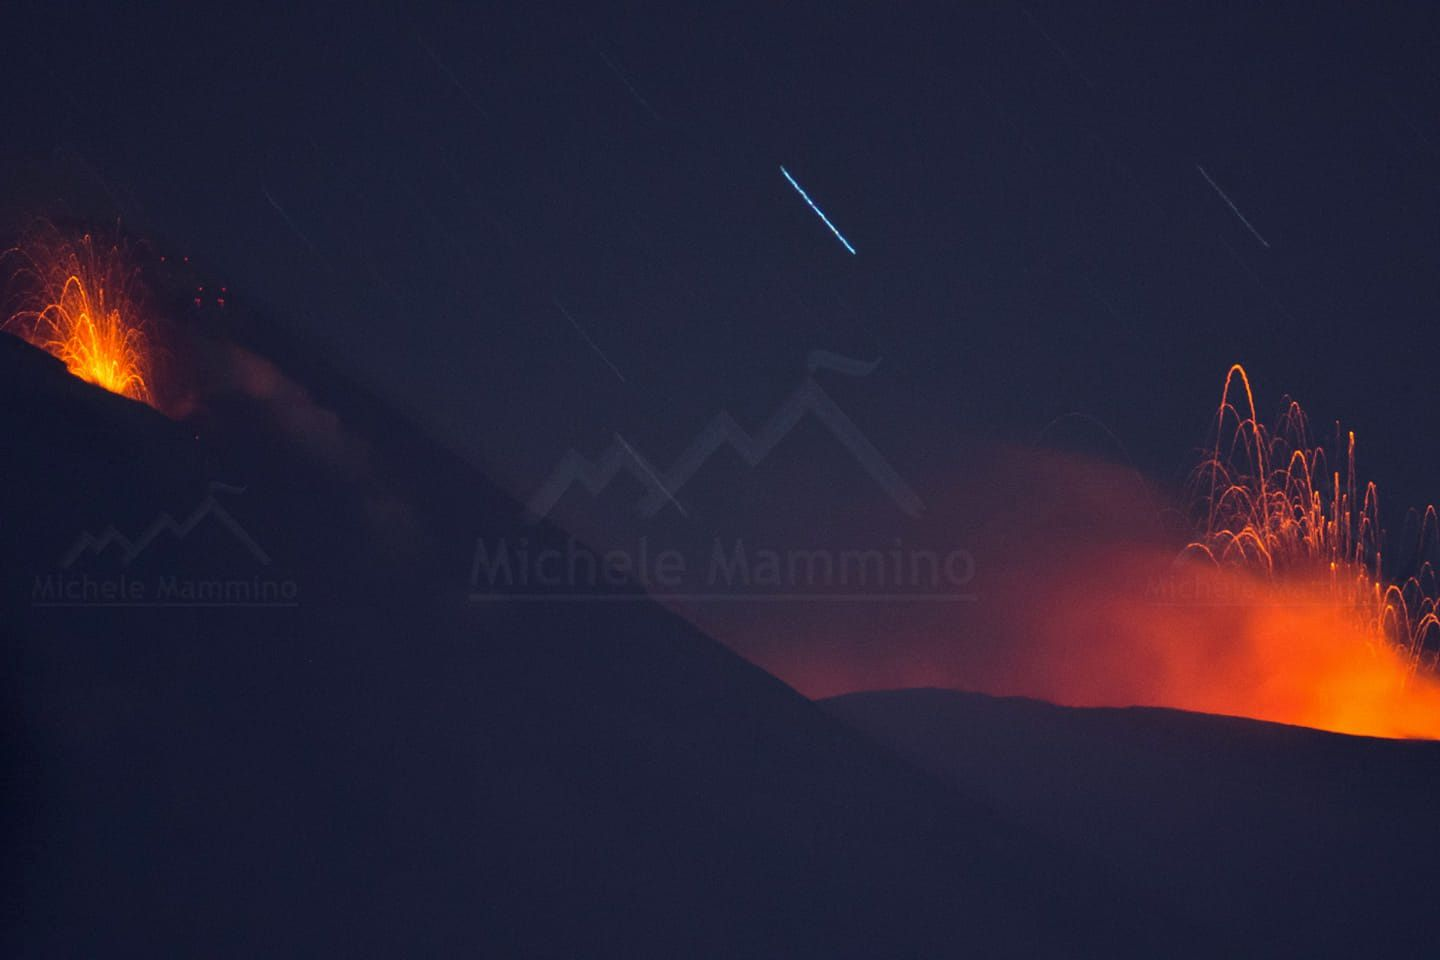 Etna - strombolian activity at craters NE and SE - photo Michele Mammino